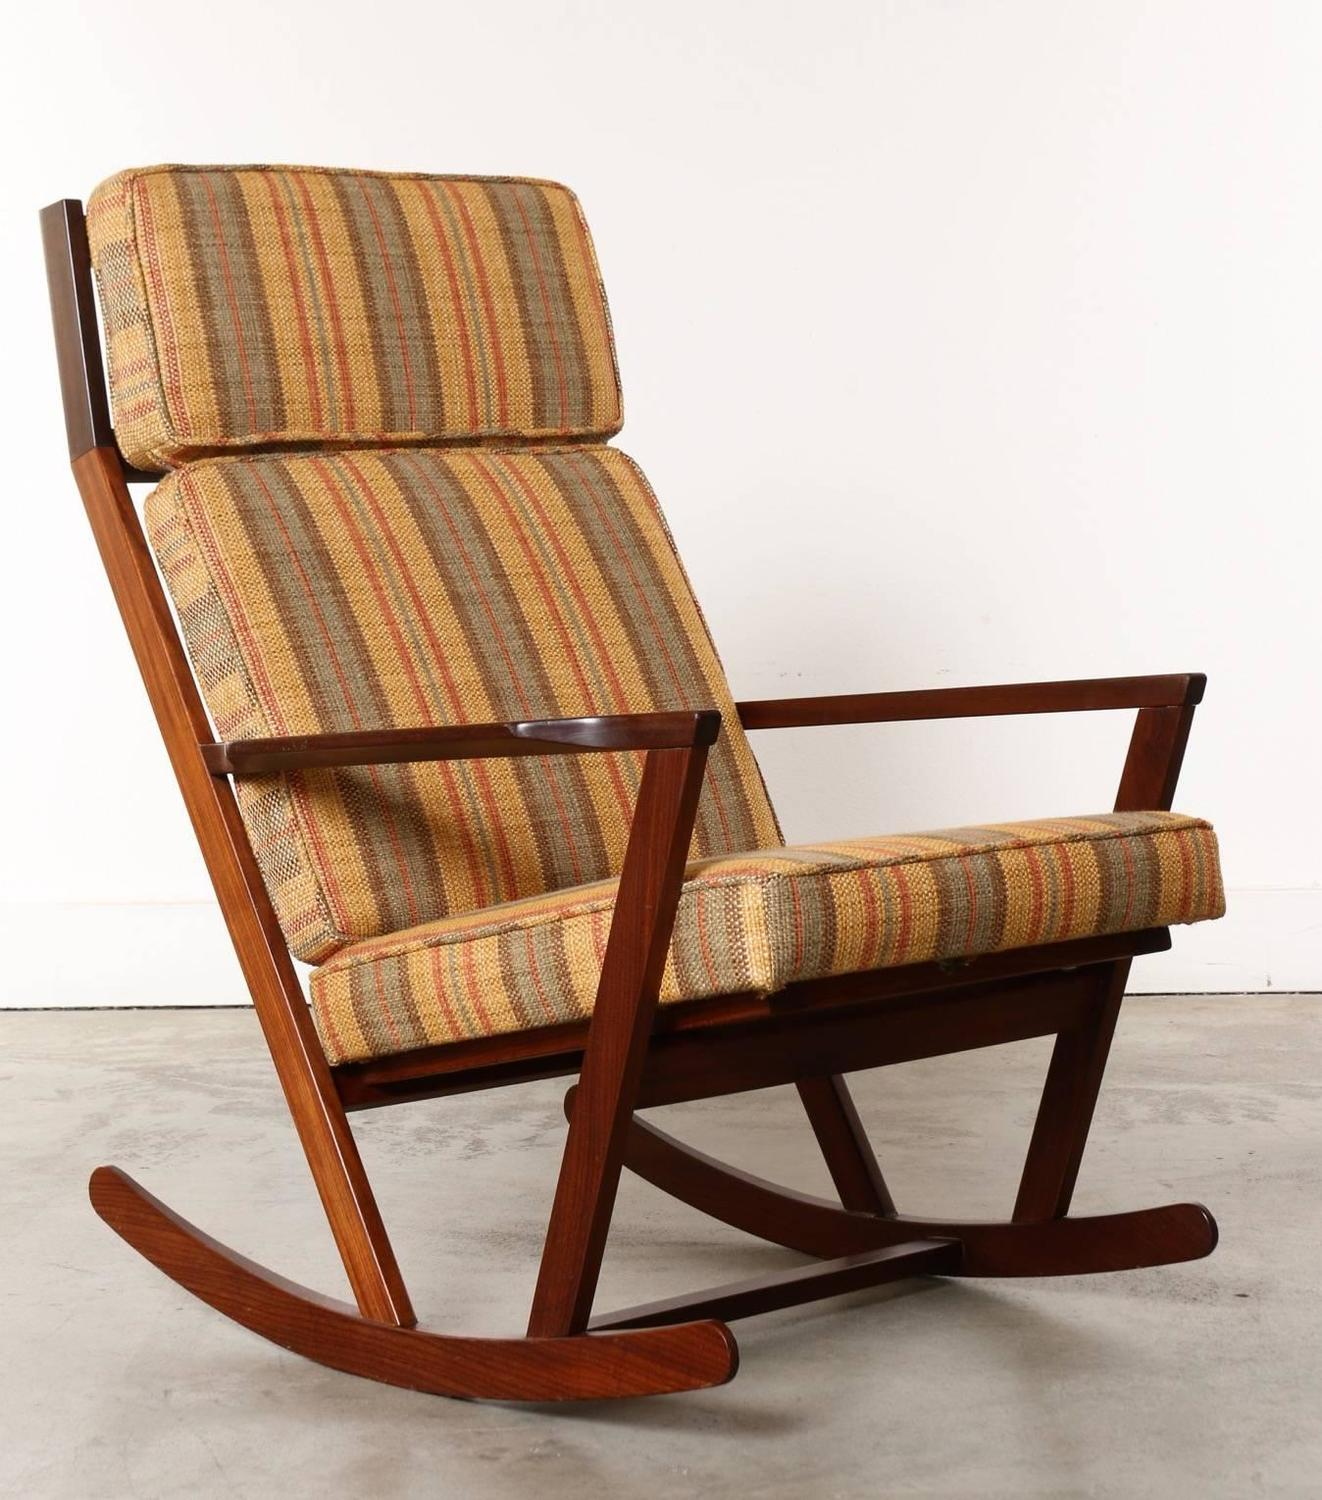 danish modern wooden rocking chair with cushions designed by poul volther 1960s for sale at 1stdibs. Black Bedroom Furniture Sets. Home Design Ideas